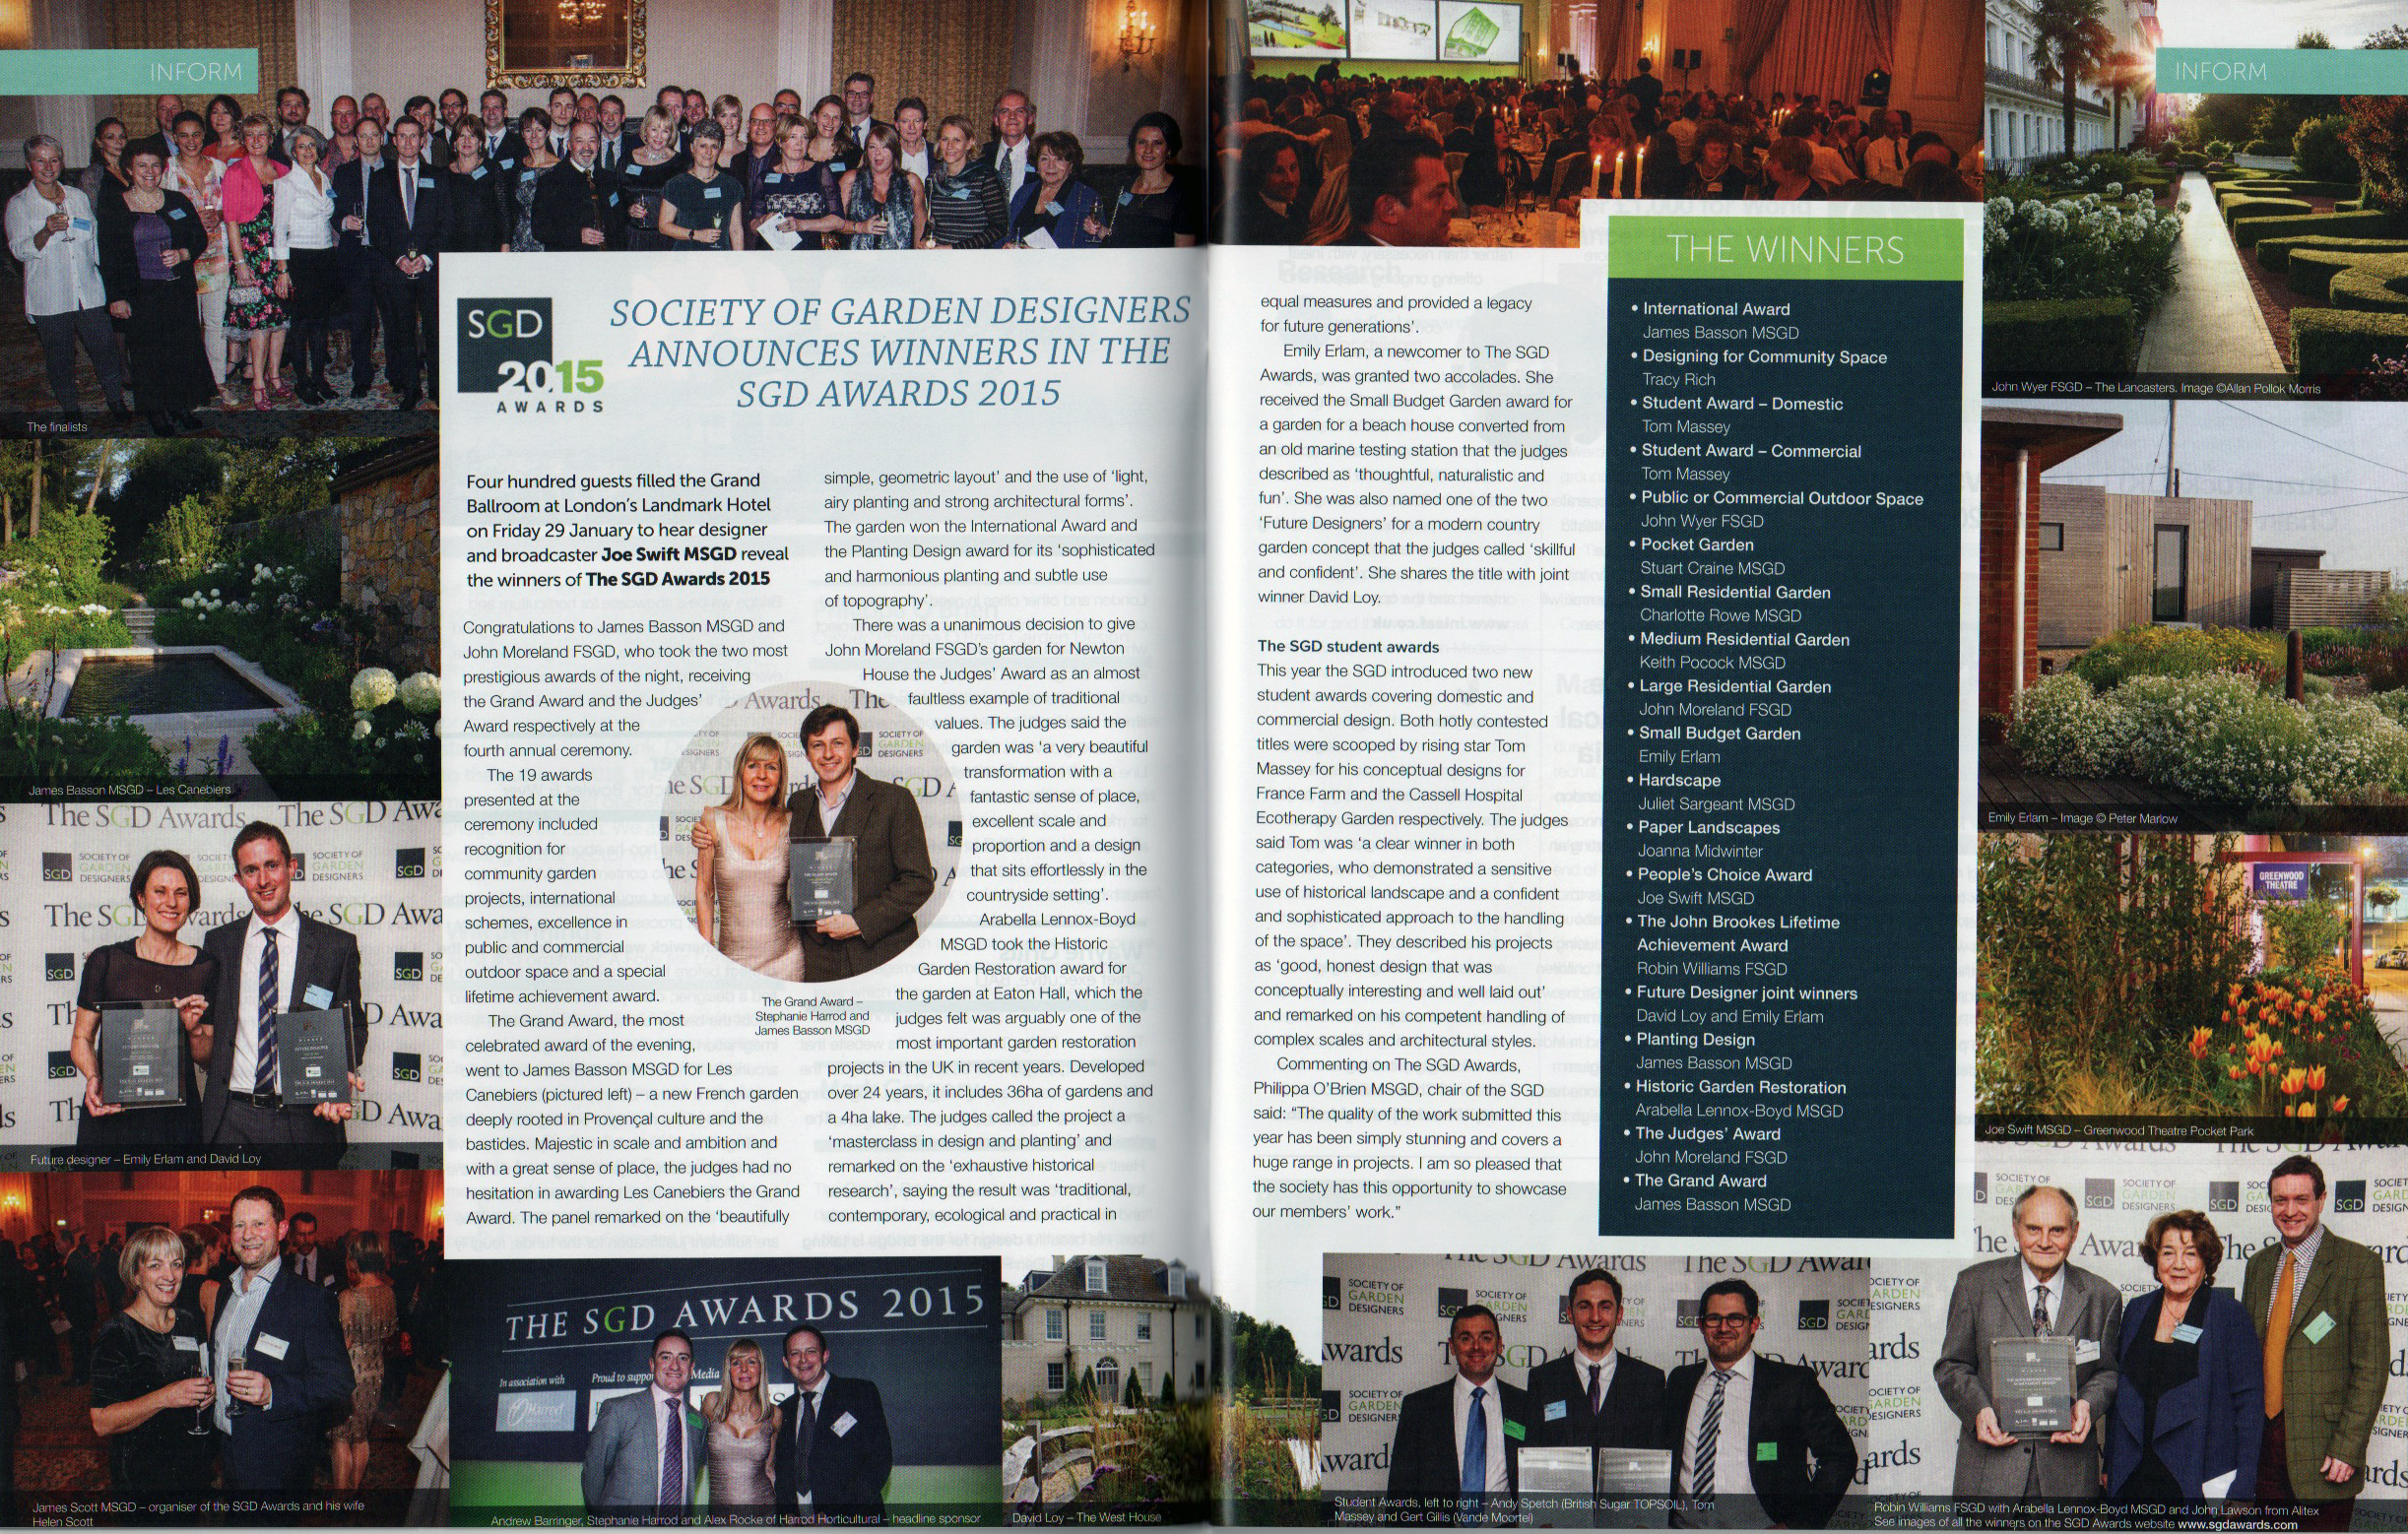 Pro Landscaper SGD Awards Article